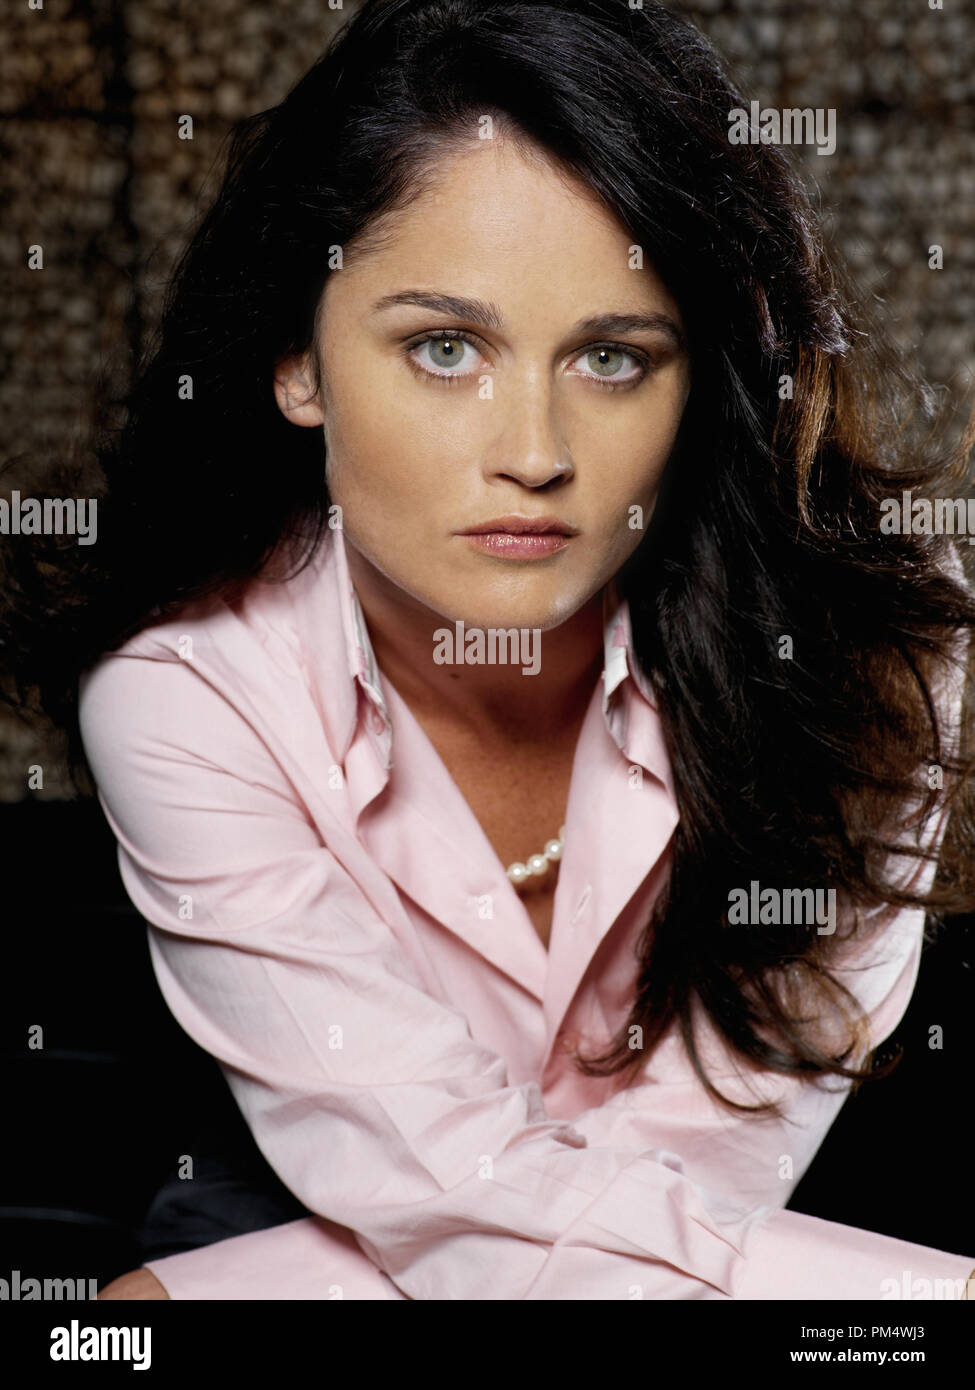 Studio Publicity Still from 'Prison Break' Robin Tunney 2006  File Reference # 307372185THA  For Editorial Use Only -  All Rights Reserved - Stock Image